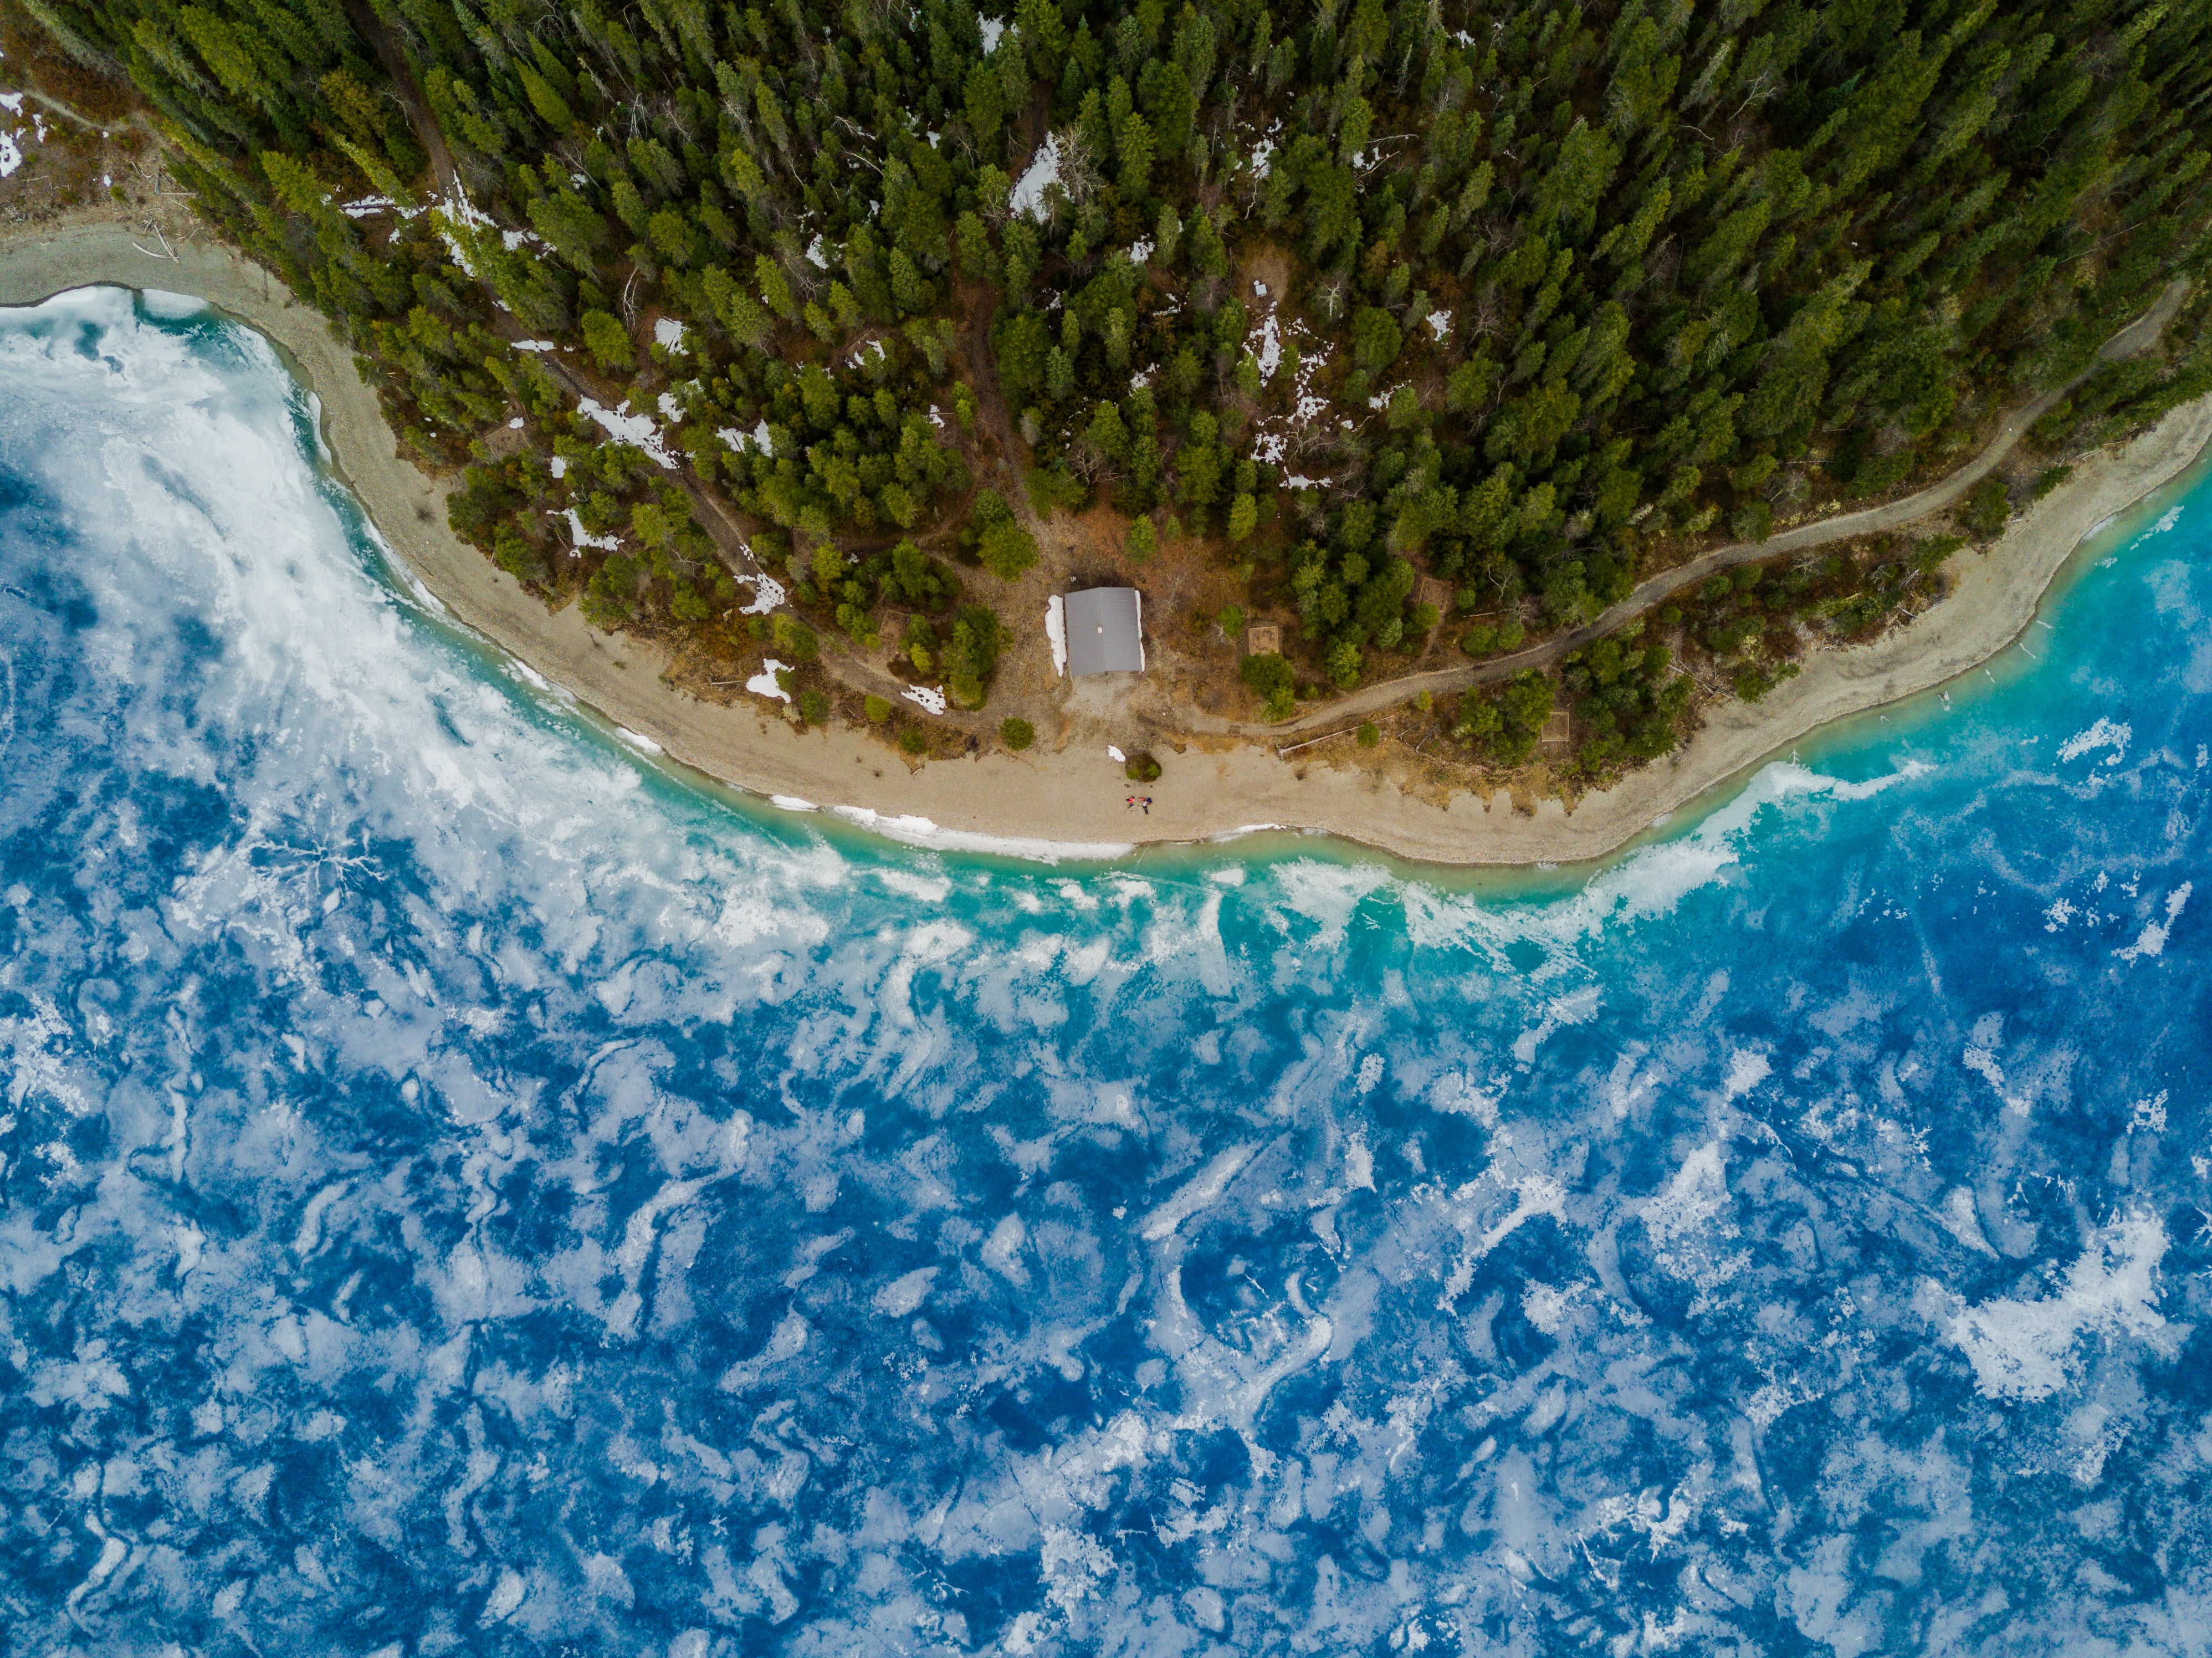 A drone shot of a sandy beach and a forest near a blue lake